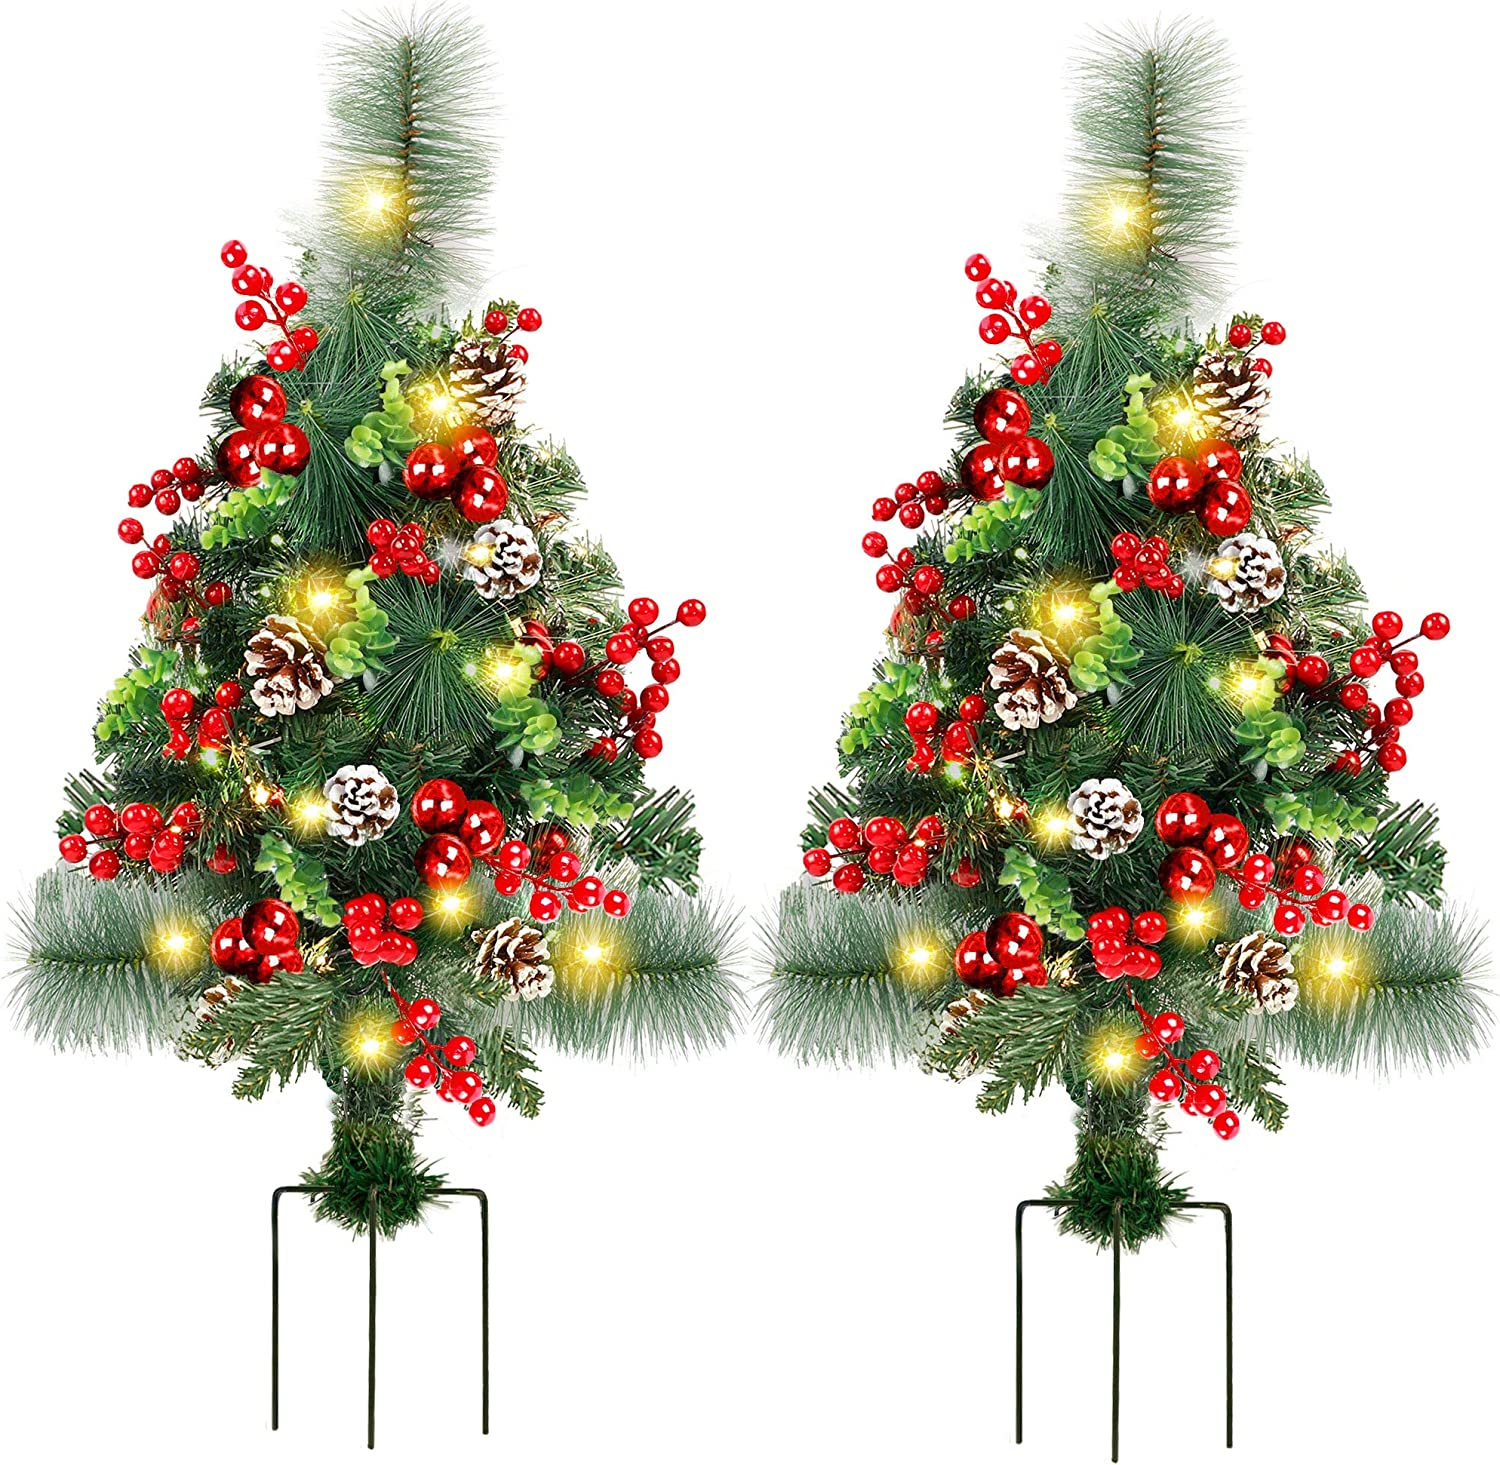 FORUP Set of 2 30 Inch Pre-Lit Pathway Christmas Trees, Outdoor Christmas Tree Decorations for Porch, Driveway, Yard, Garden, with 66 LED Lights, Red Berries, Pine Cones, Red Ball Ornaments…